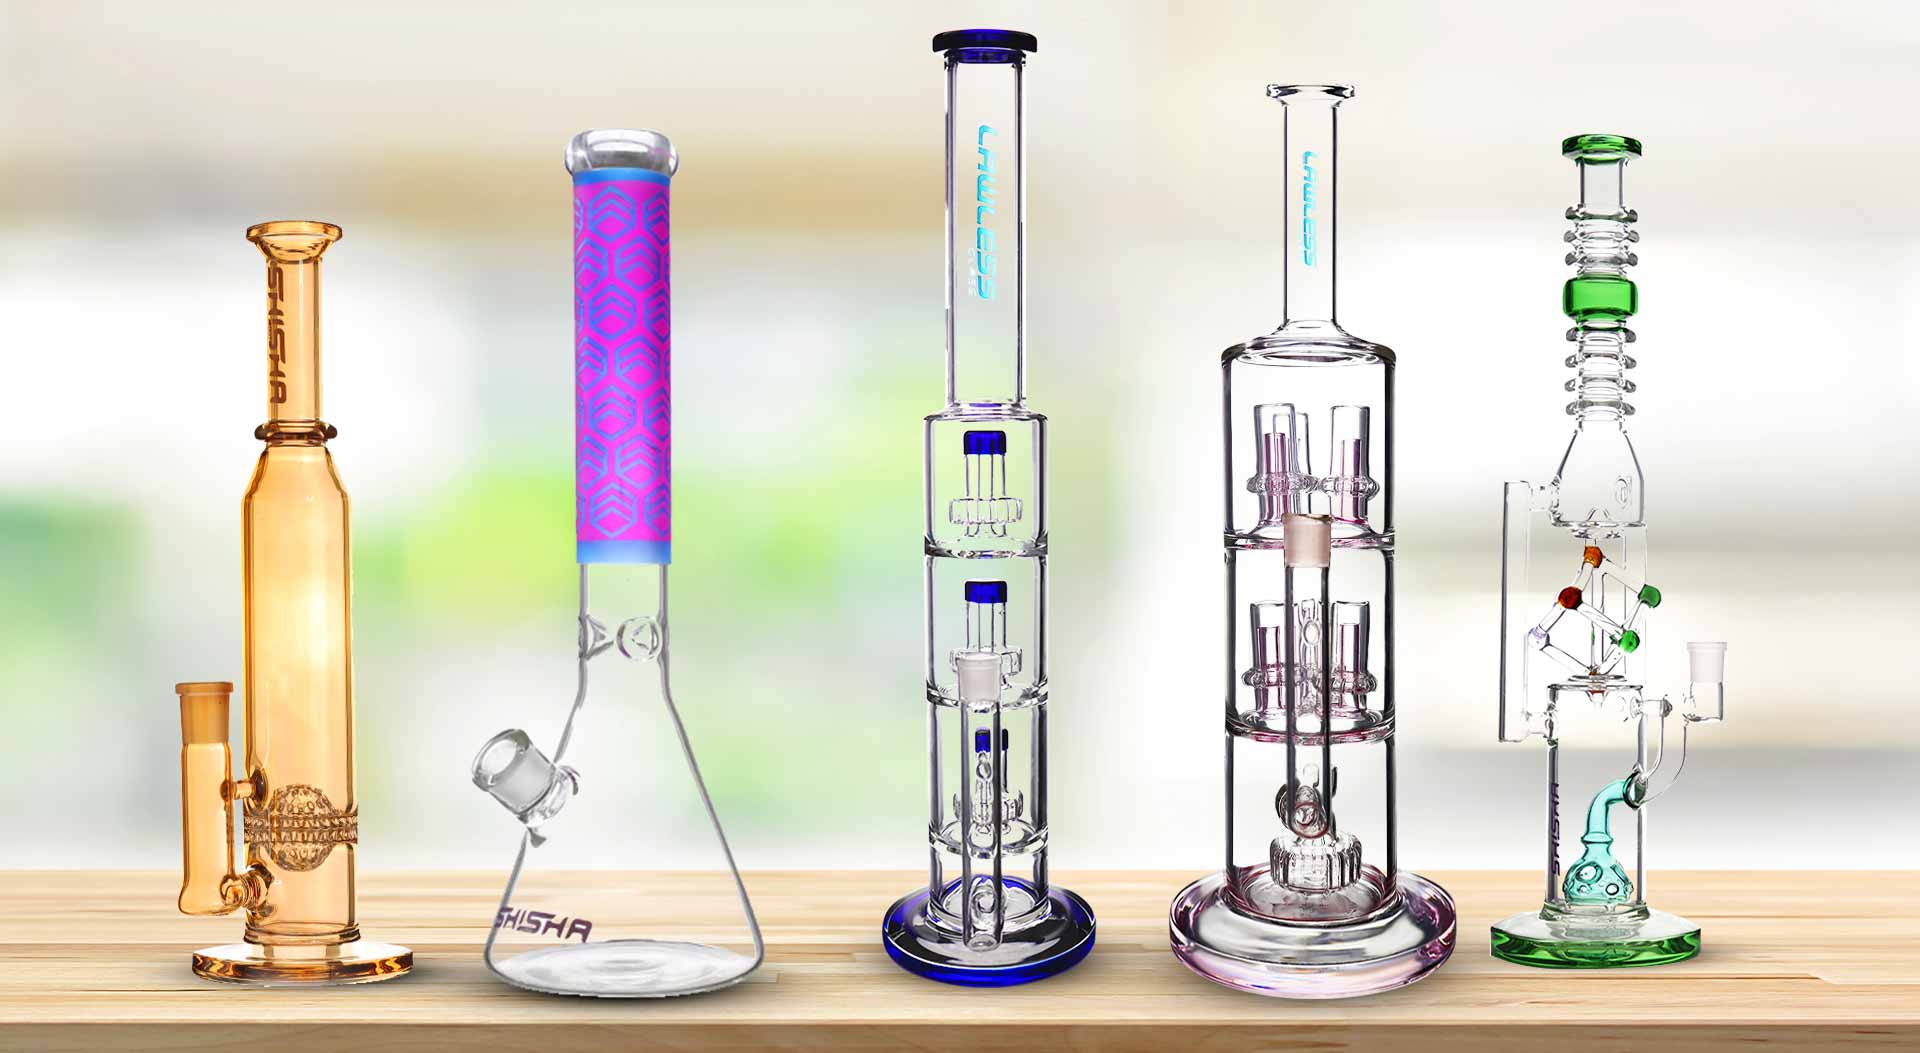 Pictures of High-Quality Bongs in Shisha Glass NZ